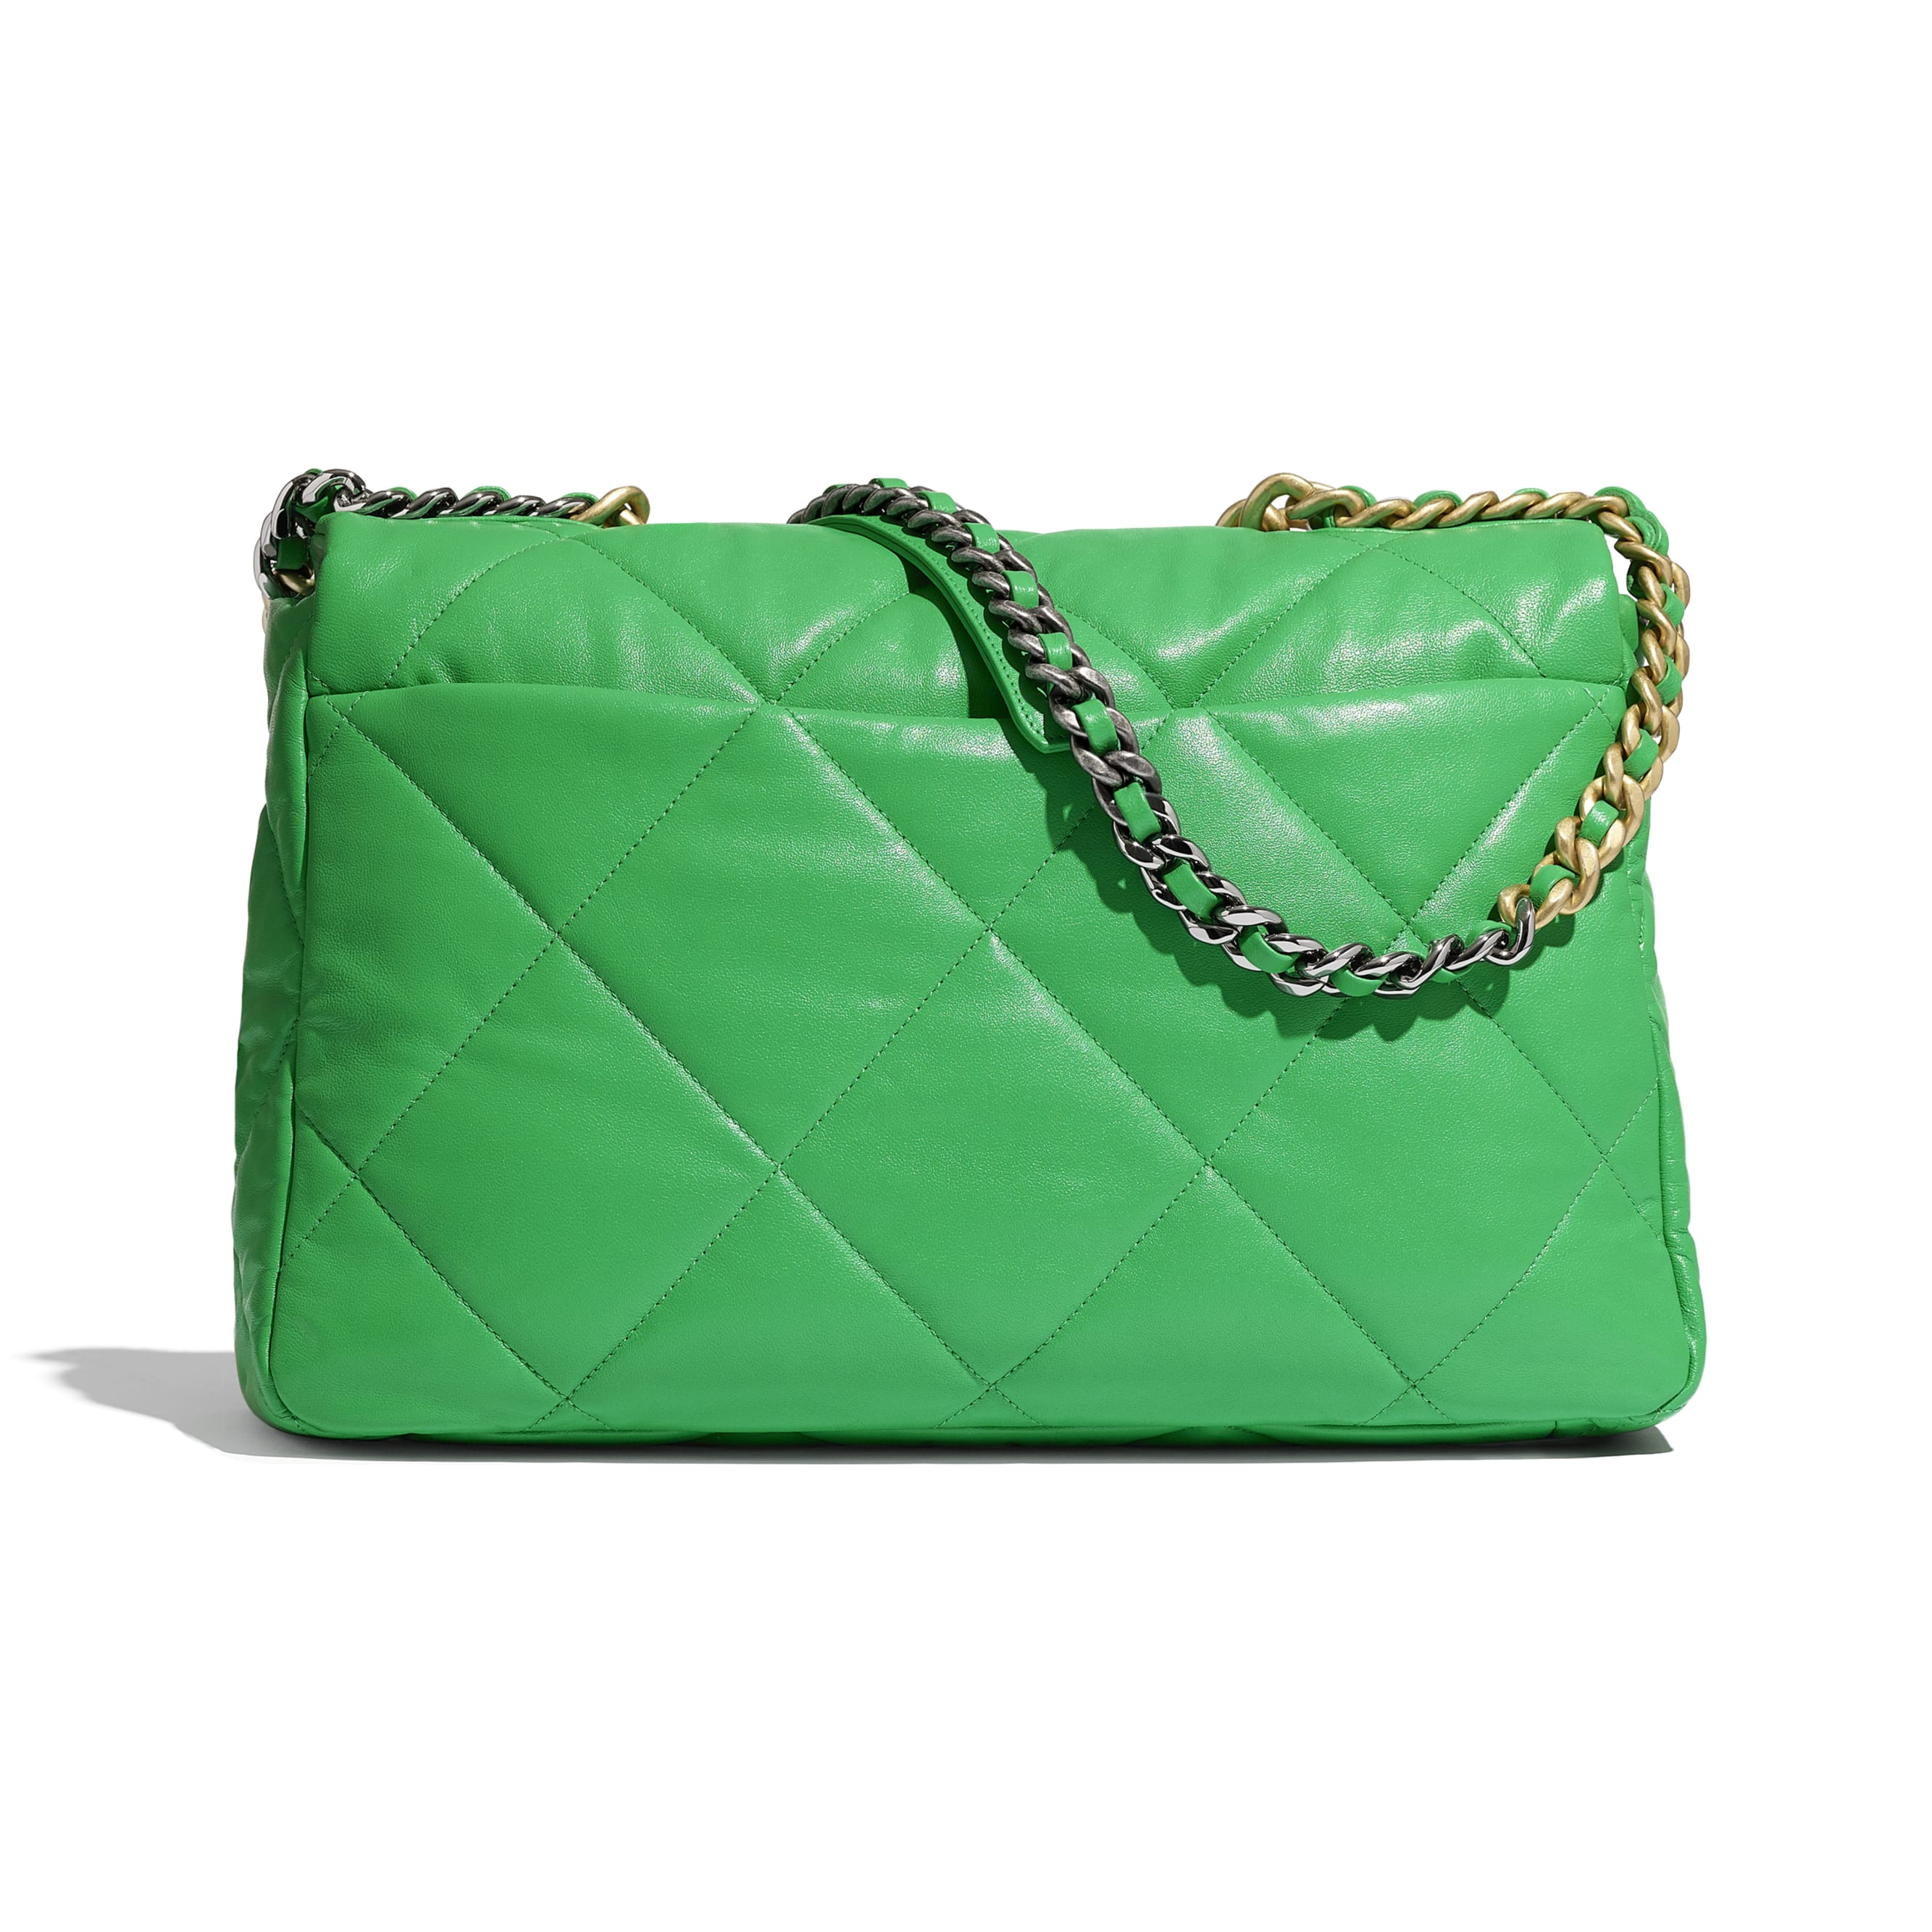 CHANEL 19 Maxi Flap Bag - Green - Lambskin, Gold-Tone, Silver-Tone & Ruthenium-Finish Metal - Alternative view - see standard sized version